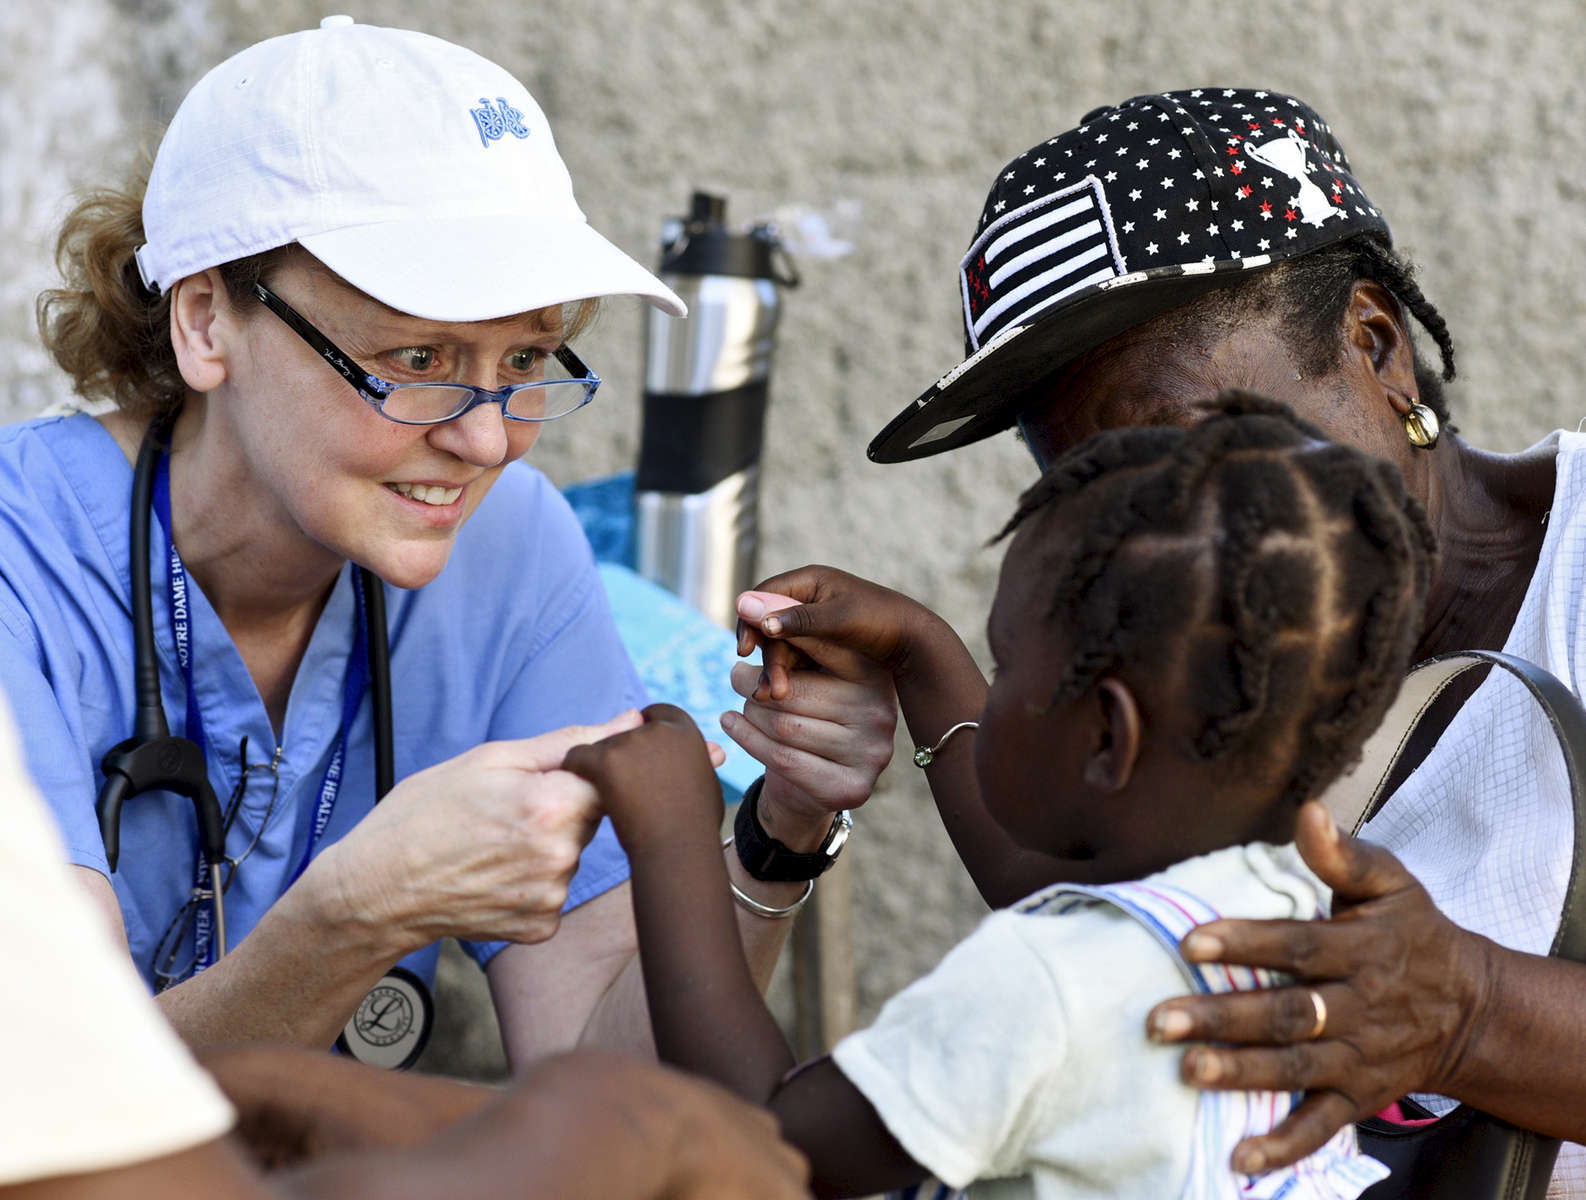 Forward in Health trip leader Paula Mulqueen evaluates a toddler at the Adventist Church in Ducis, Haiti on Wednesday, November 2, 2016.